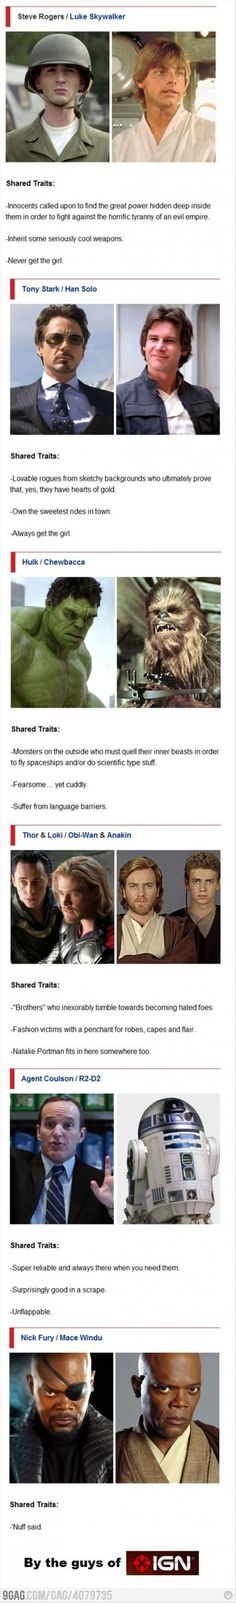 The Avengers and Star Wars